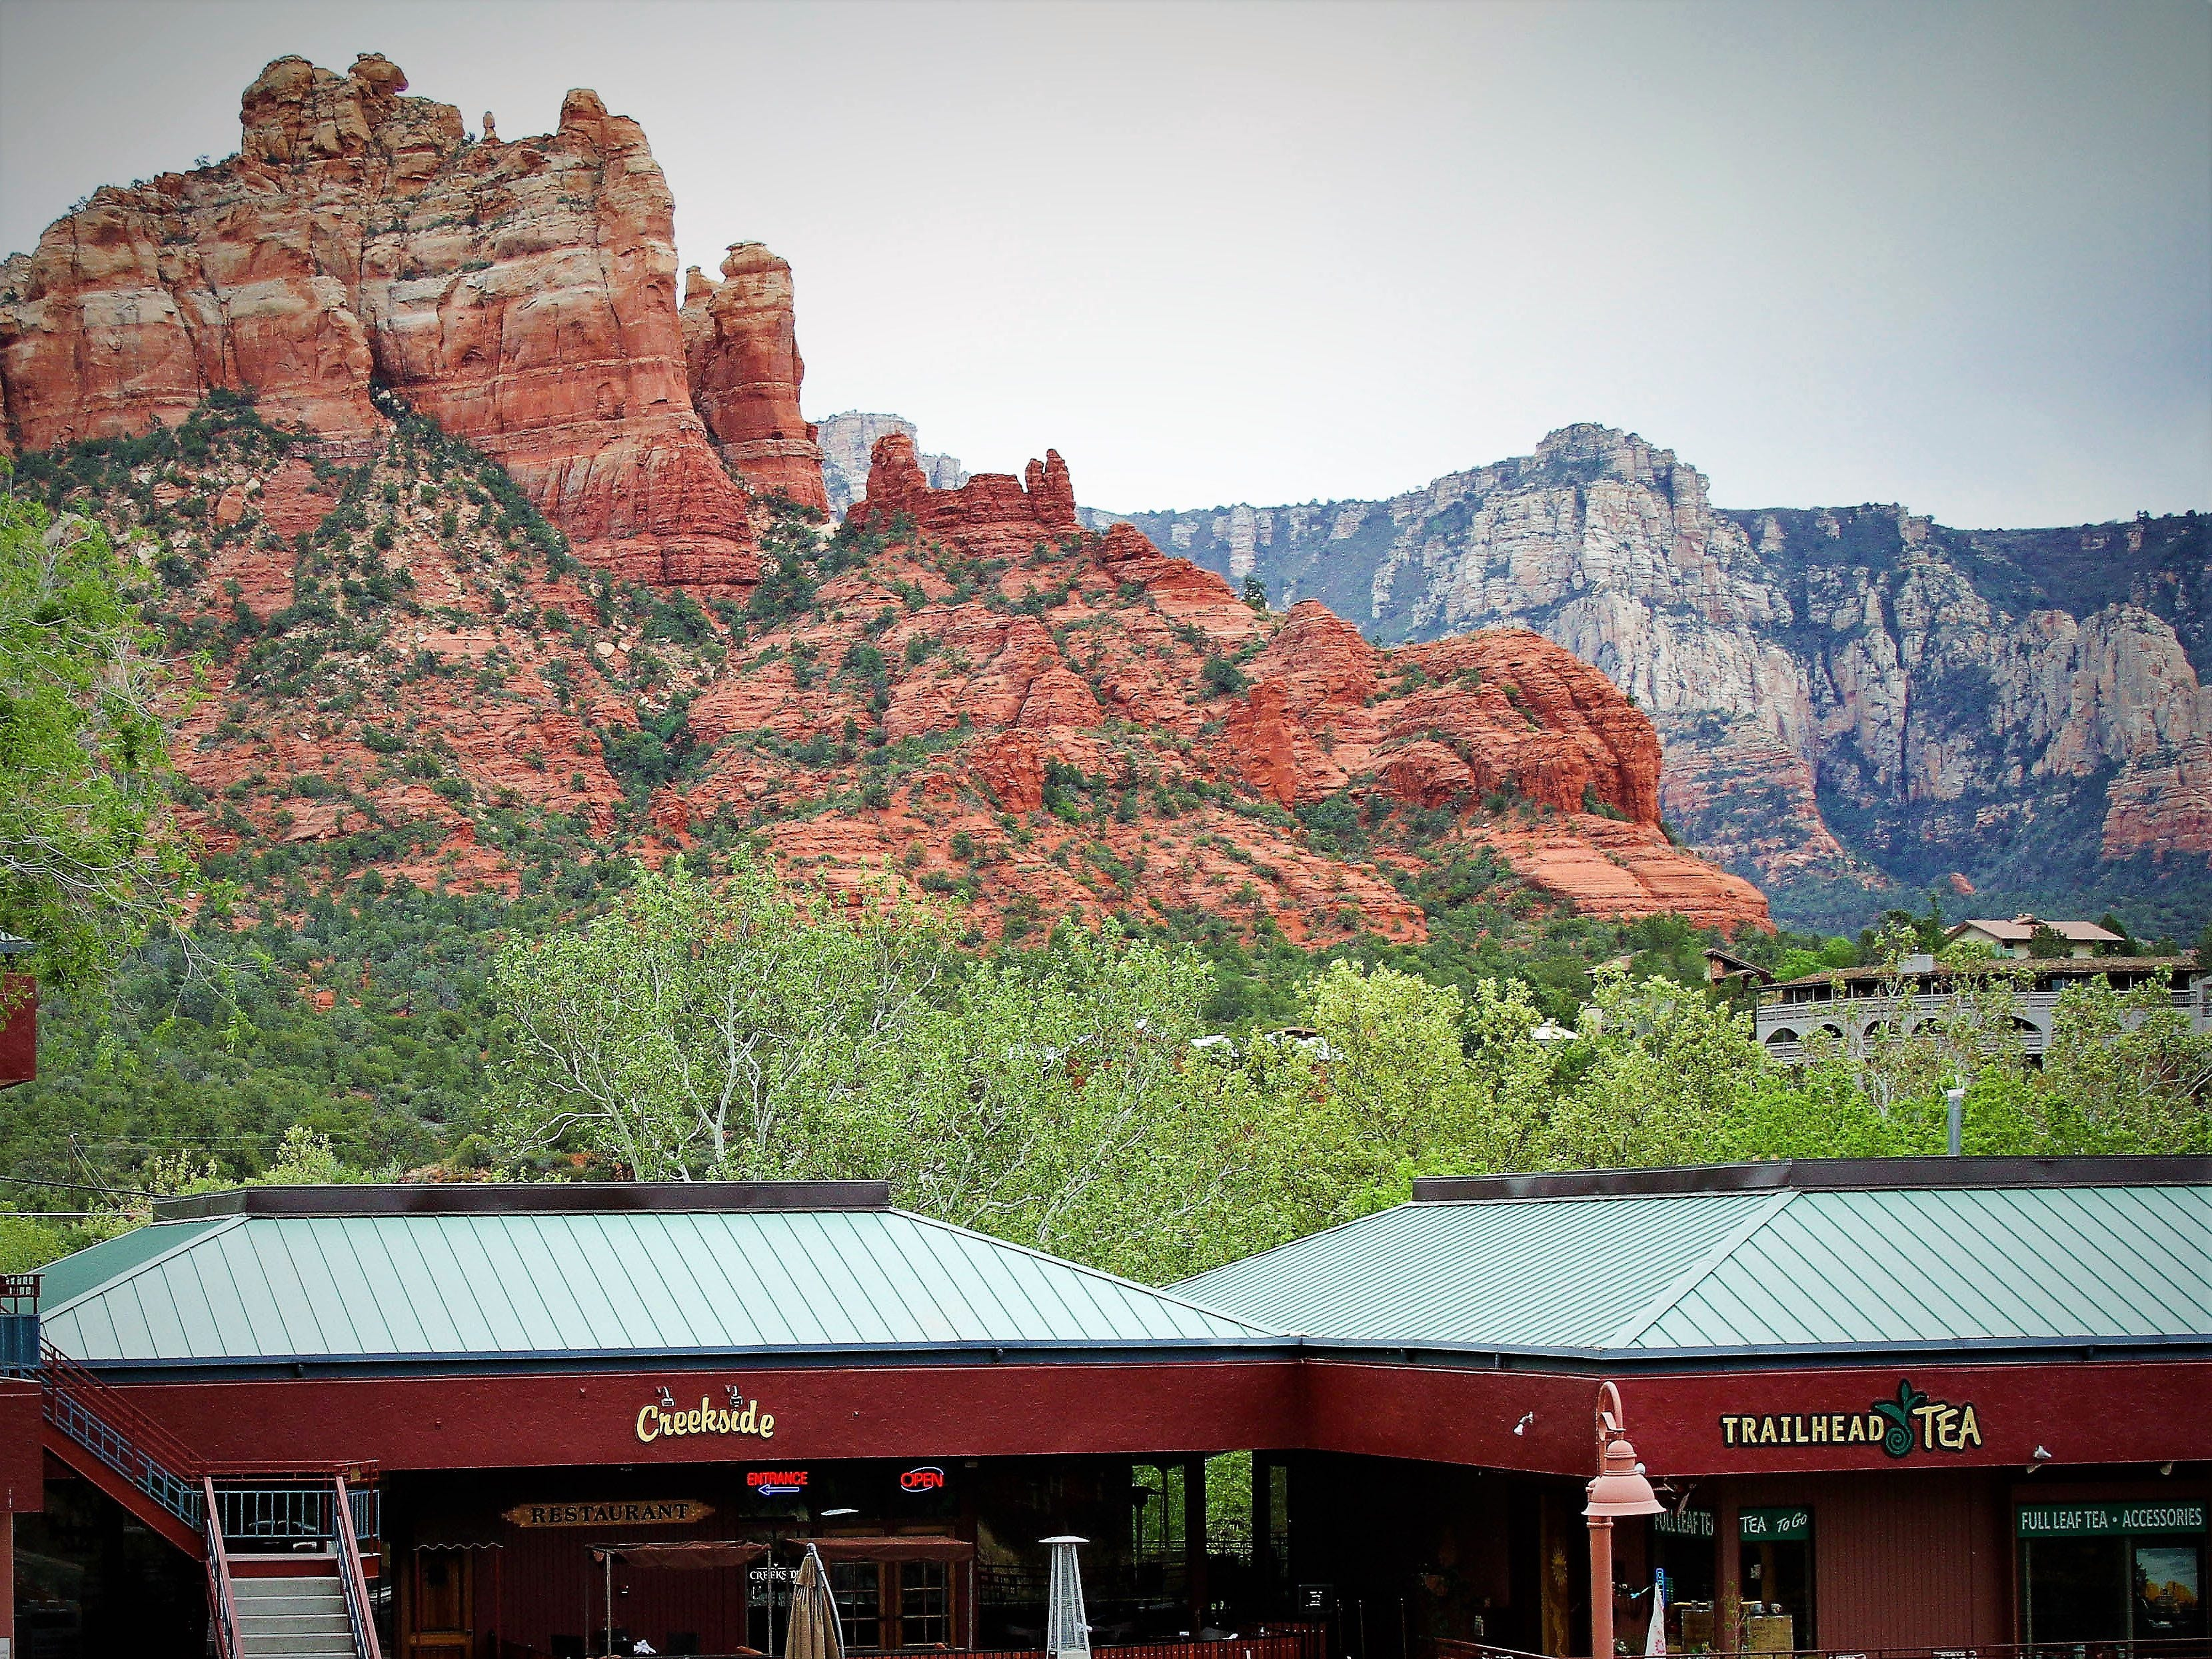 Creekside American Bistro perches on the edge of Oak Creek with views of Snoopy Rock and the surrounding cliffs.